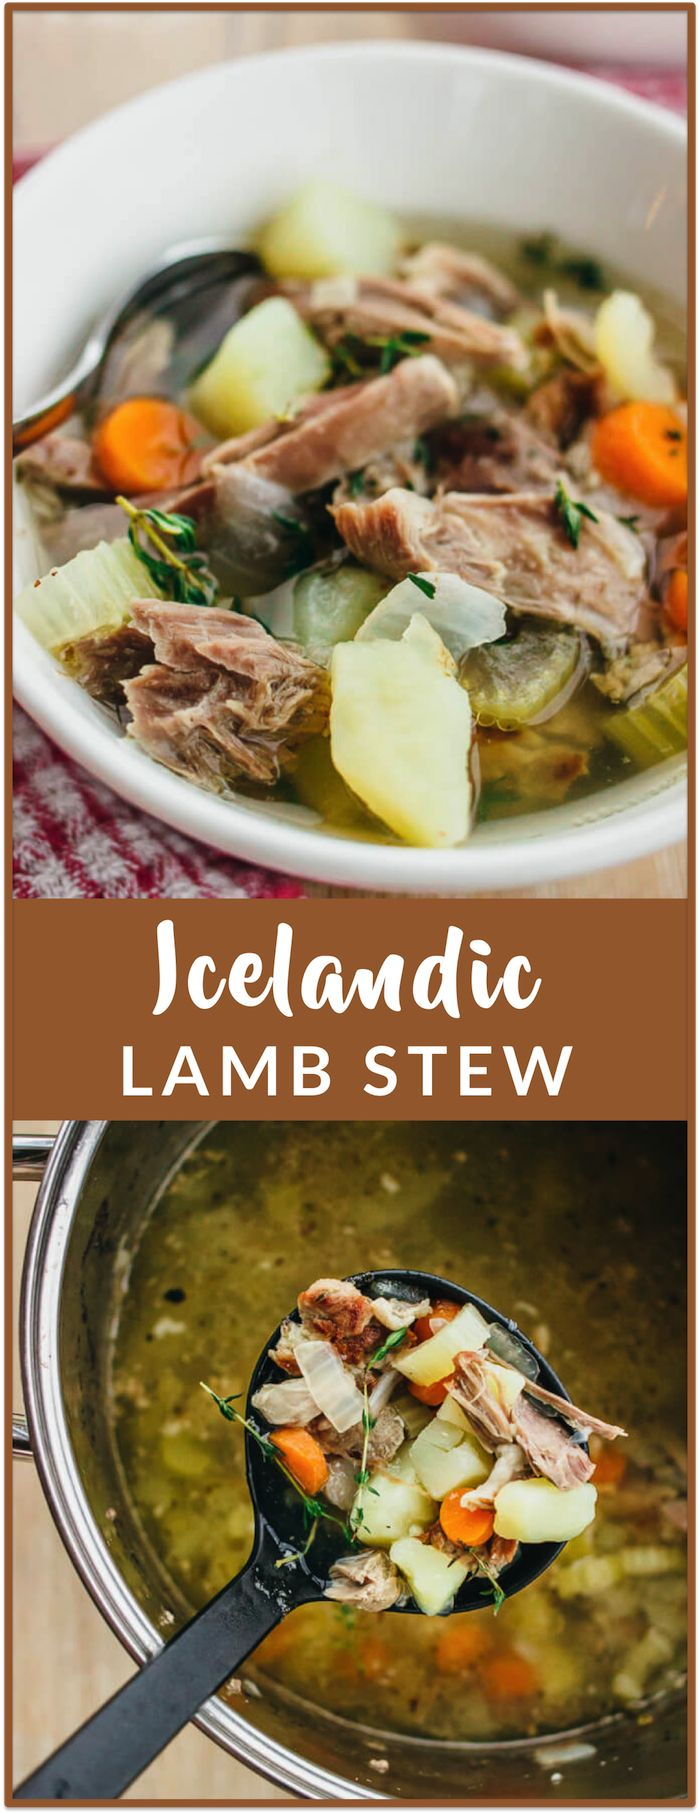 Icelandic lamb stew - Sheep outnumber people in Iceland by a factor of 3, and lamb stew is one of the most popular dishes in Iceland. After tasting several delicious lamb stews during my recent trip there, this recipe is my best recreation of Icelandic lamb stew. It's very hearty and meaty — the lamb meat is stewed until tender and easily shredded. - savorytooth.com